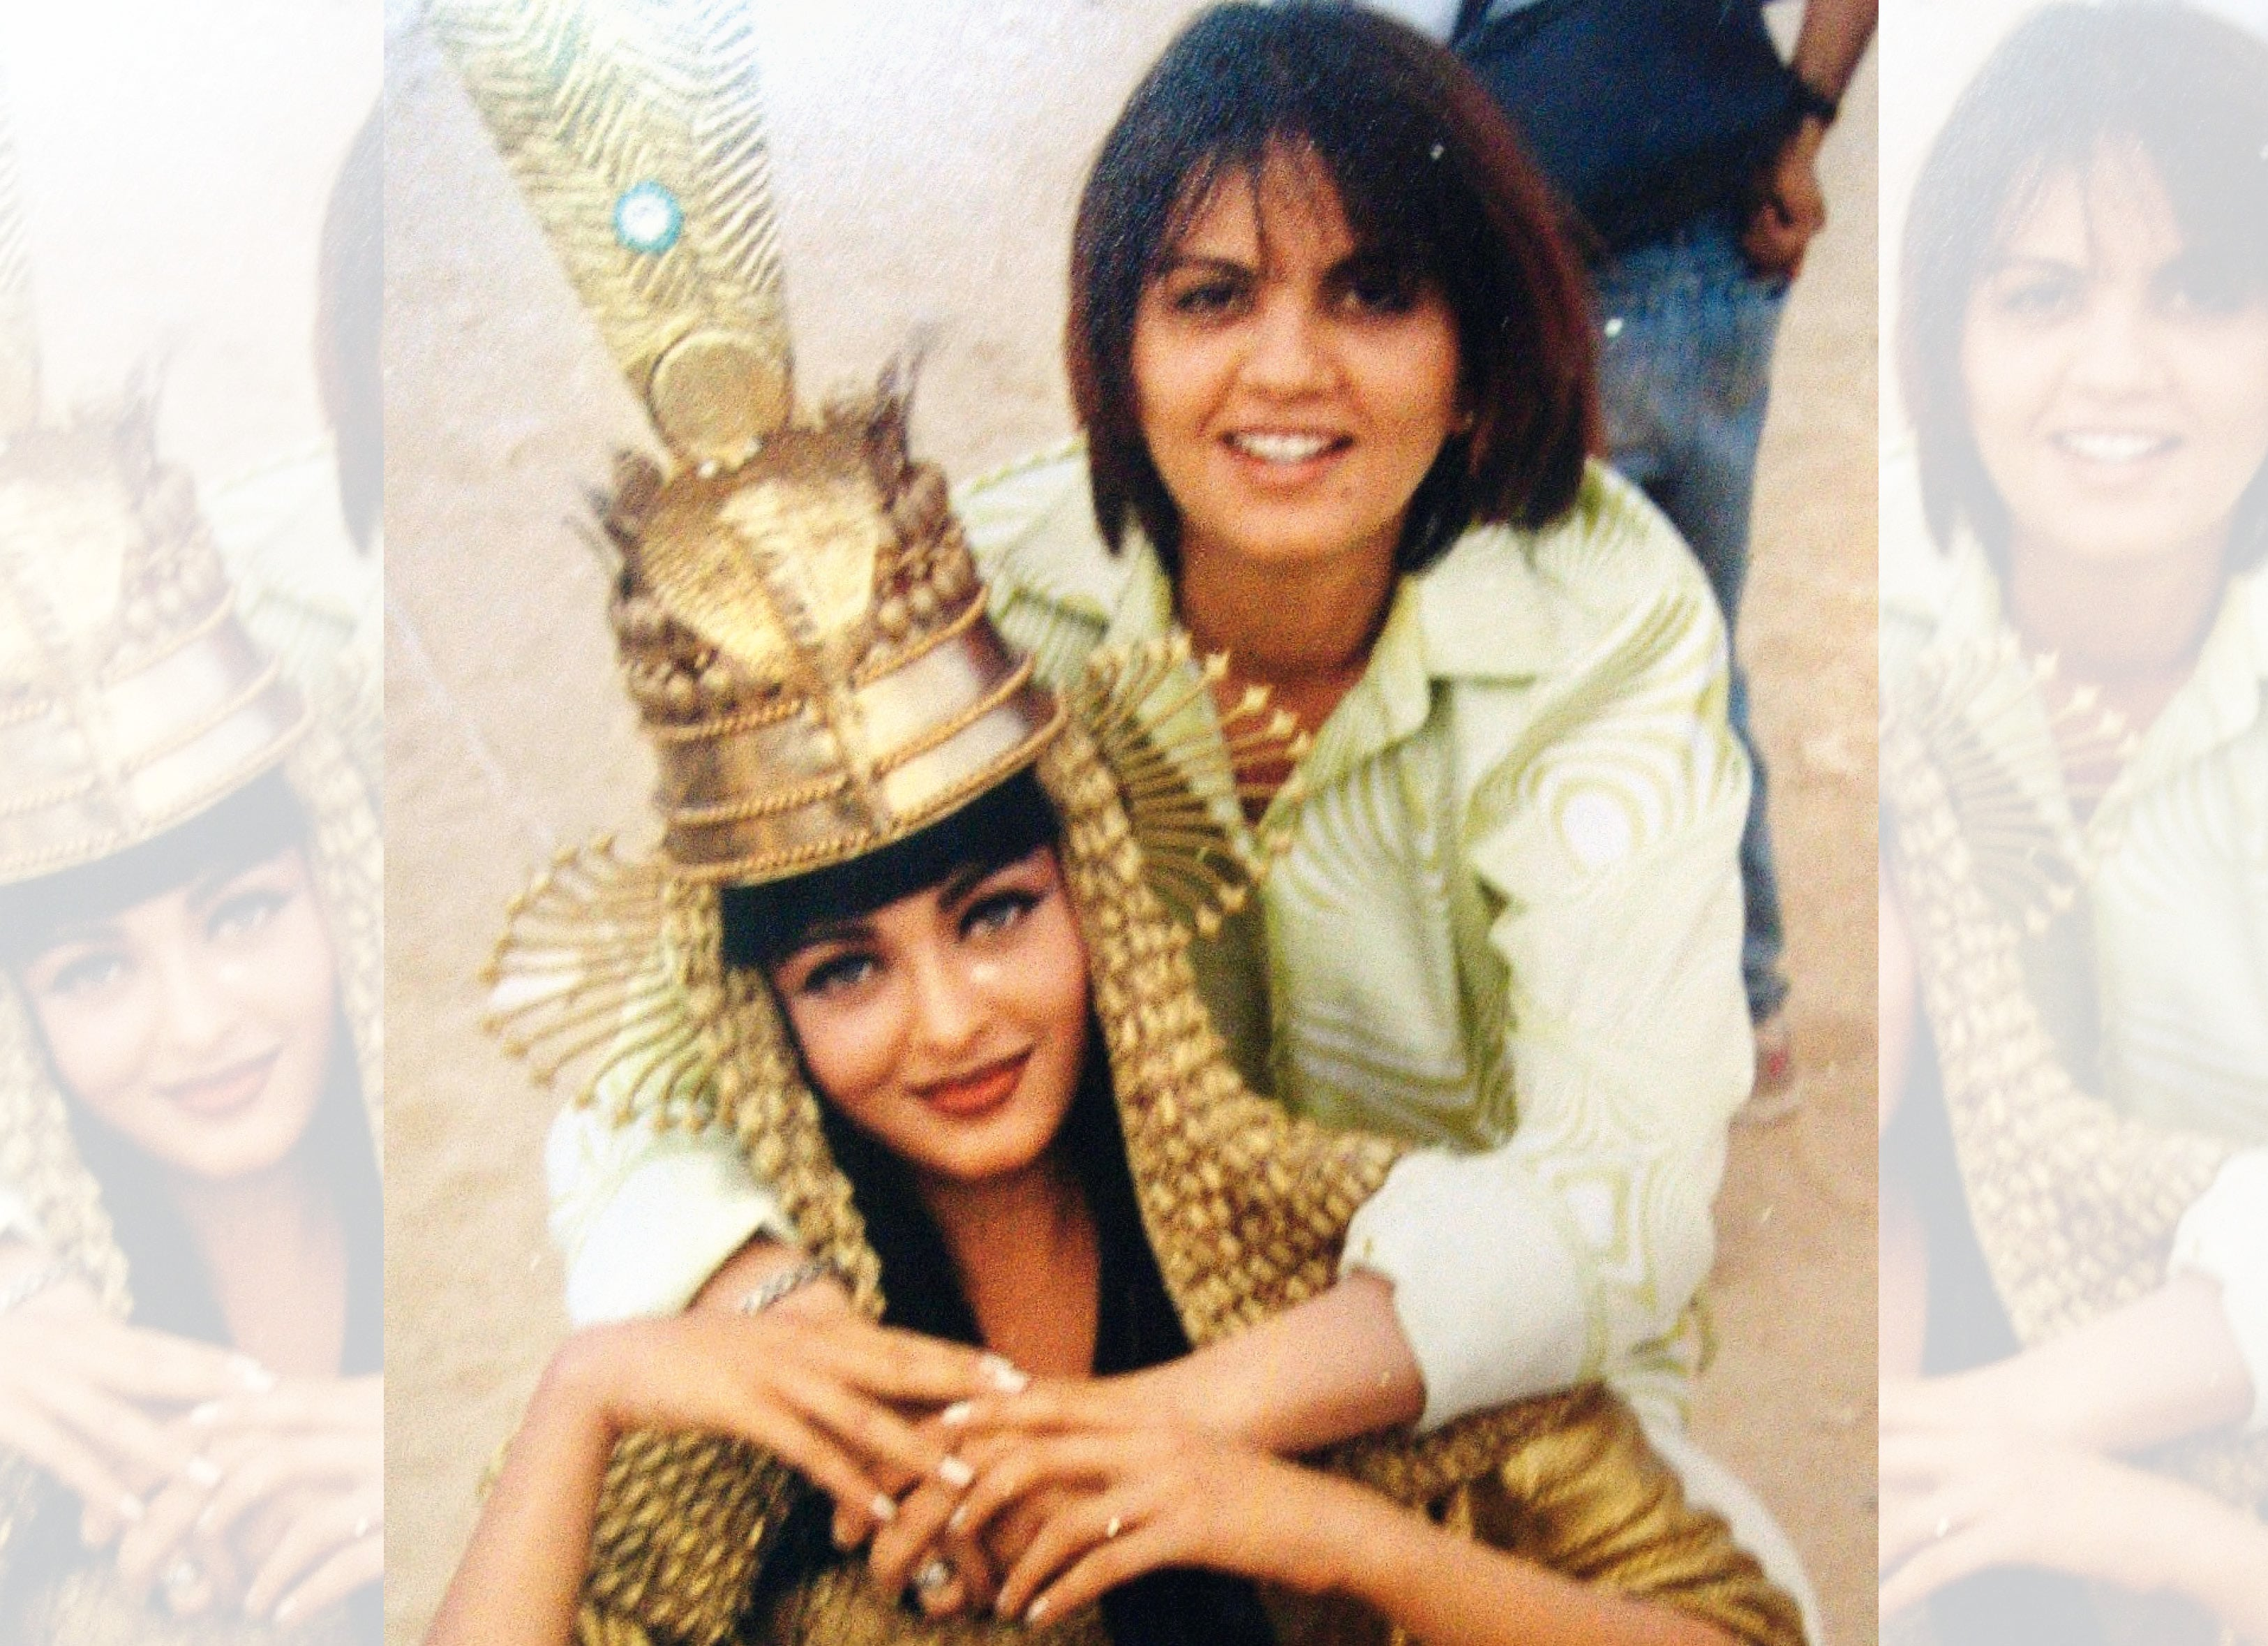 With Aishwarya Rai while filming a song for Jeans in Egypt in the 90s